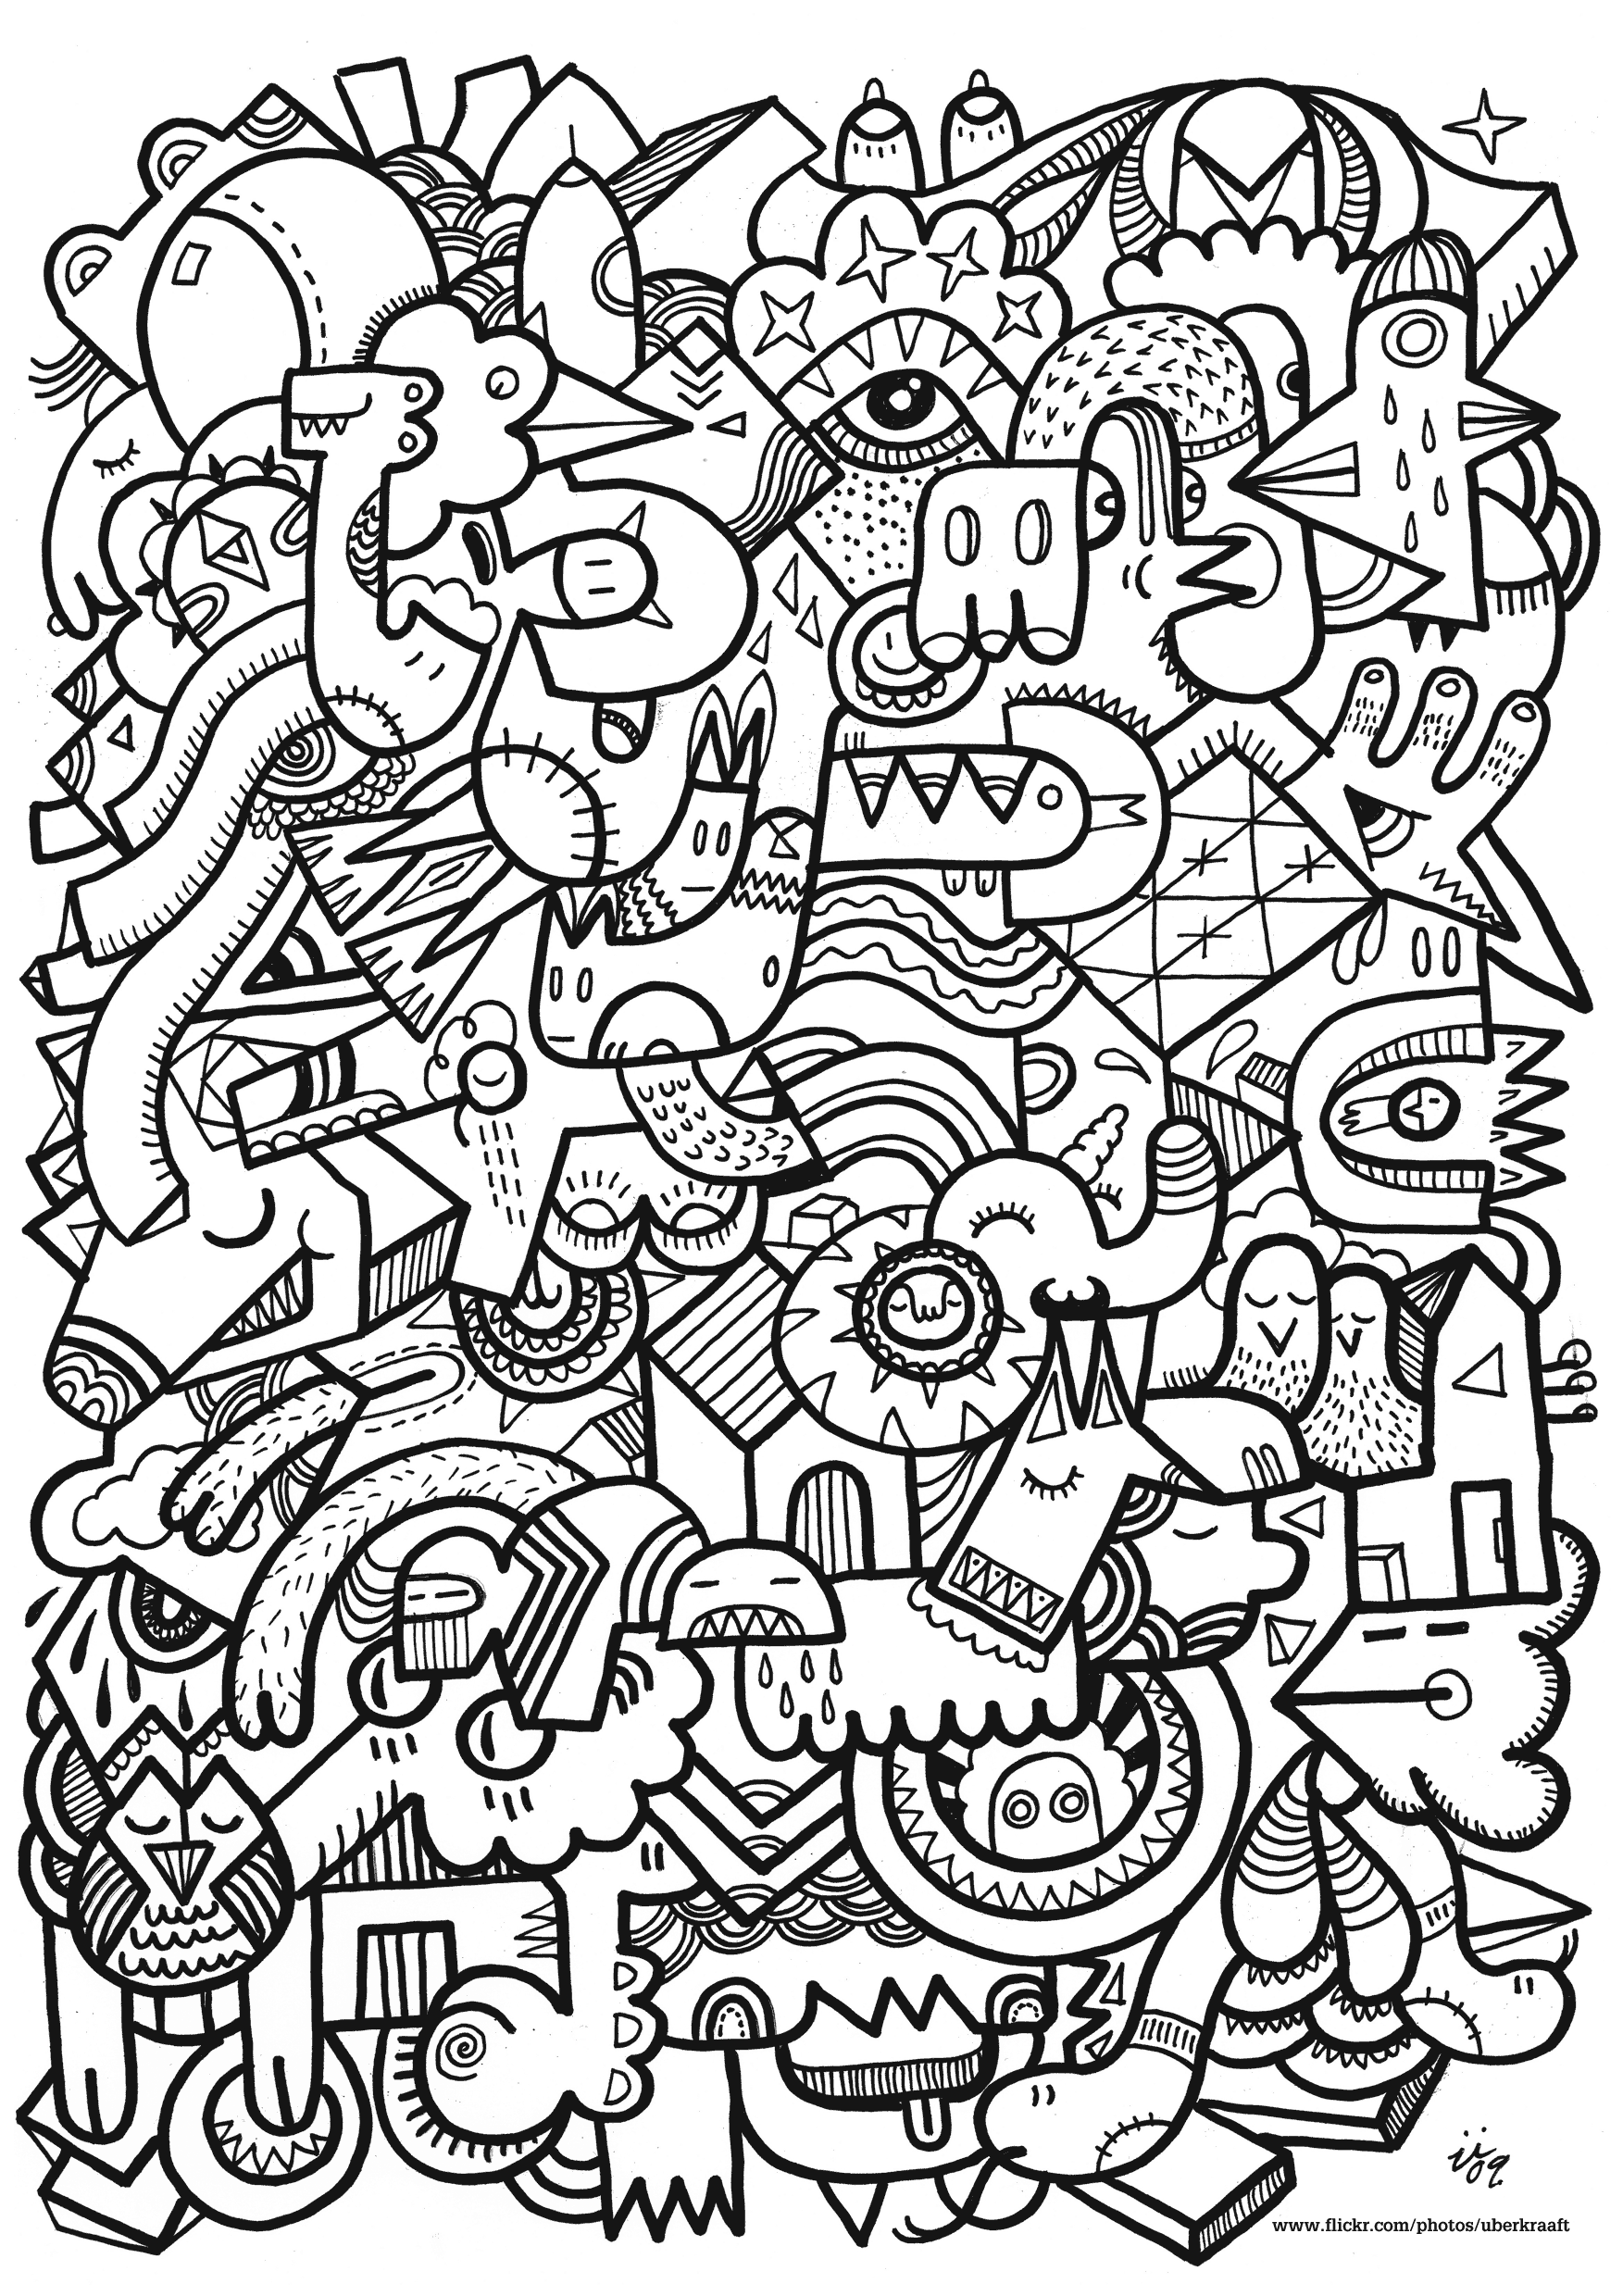 coloring websites cool clawdeen coloring page free printable coloring pages coloring websites